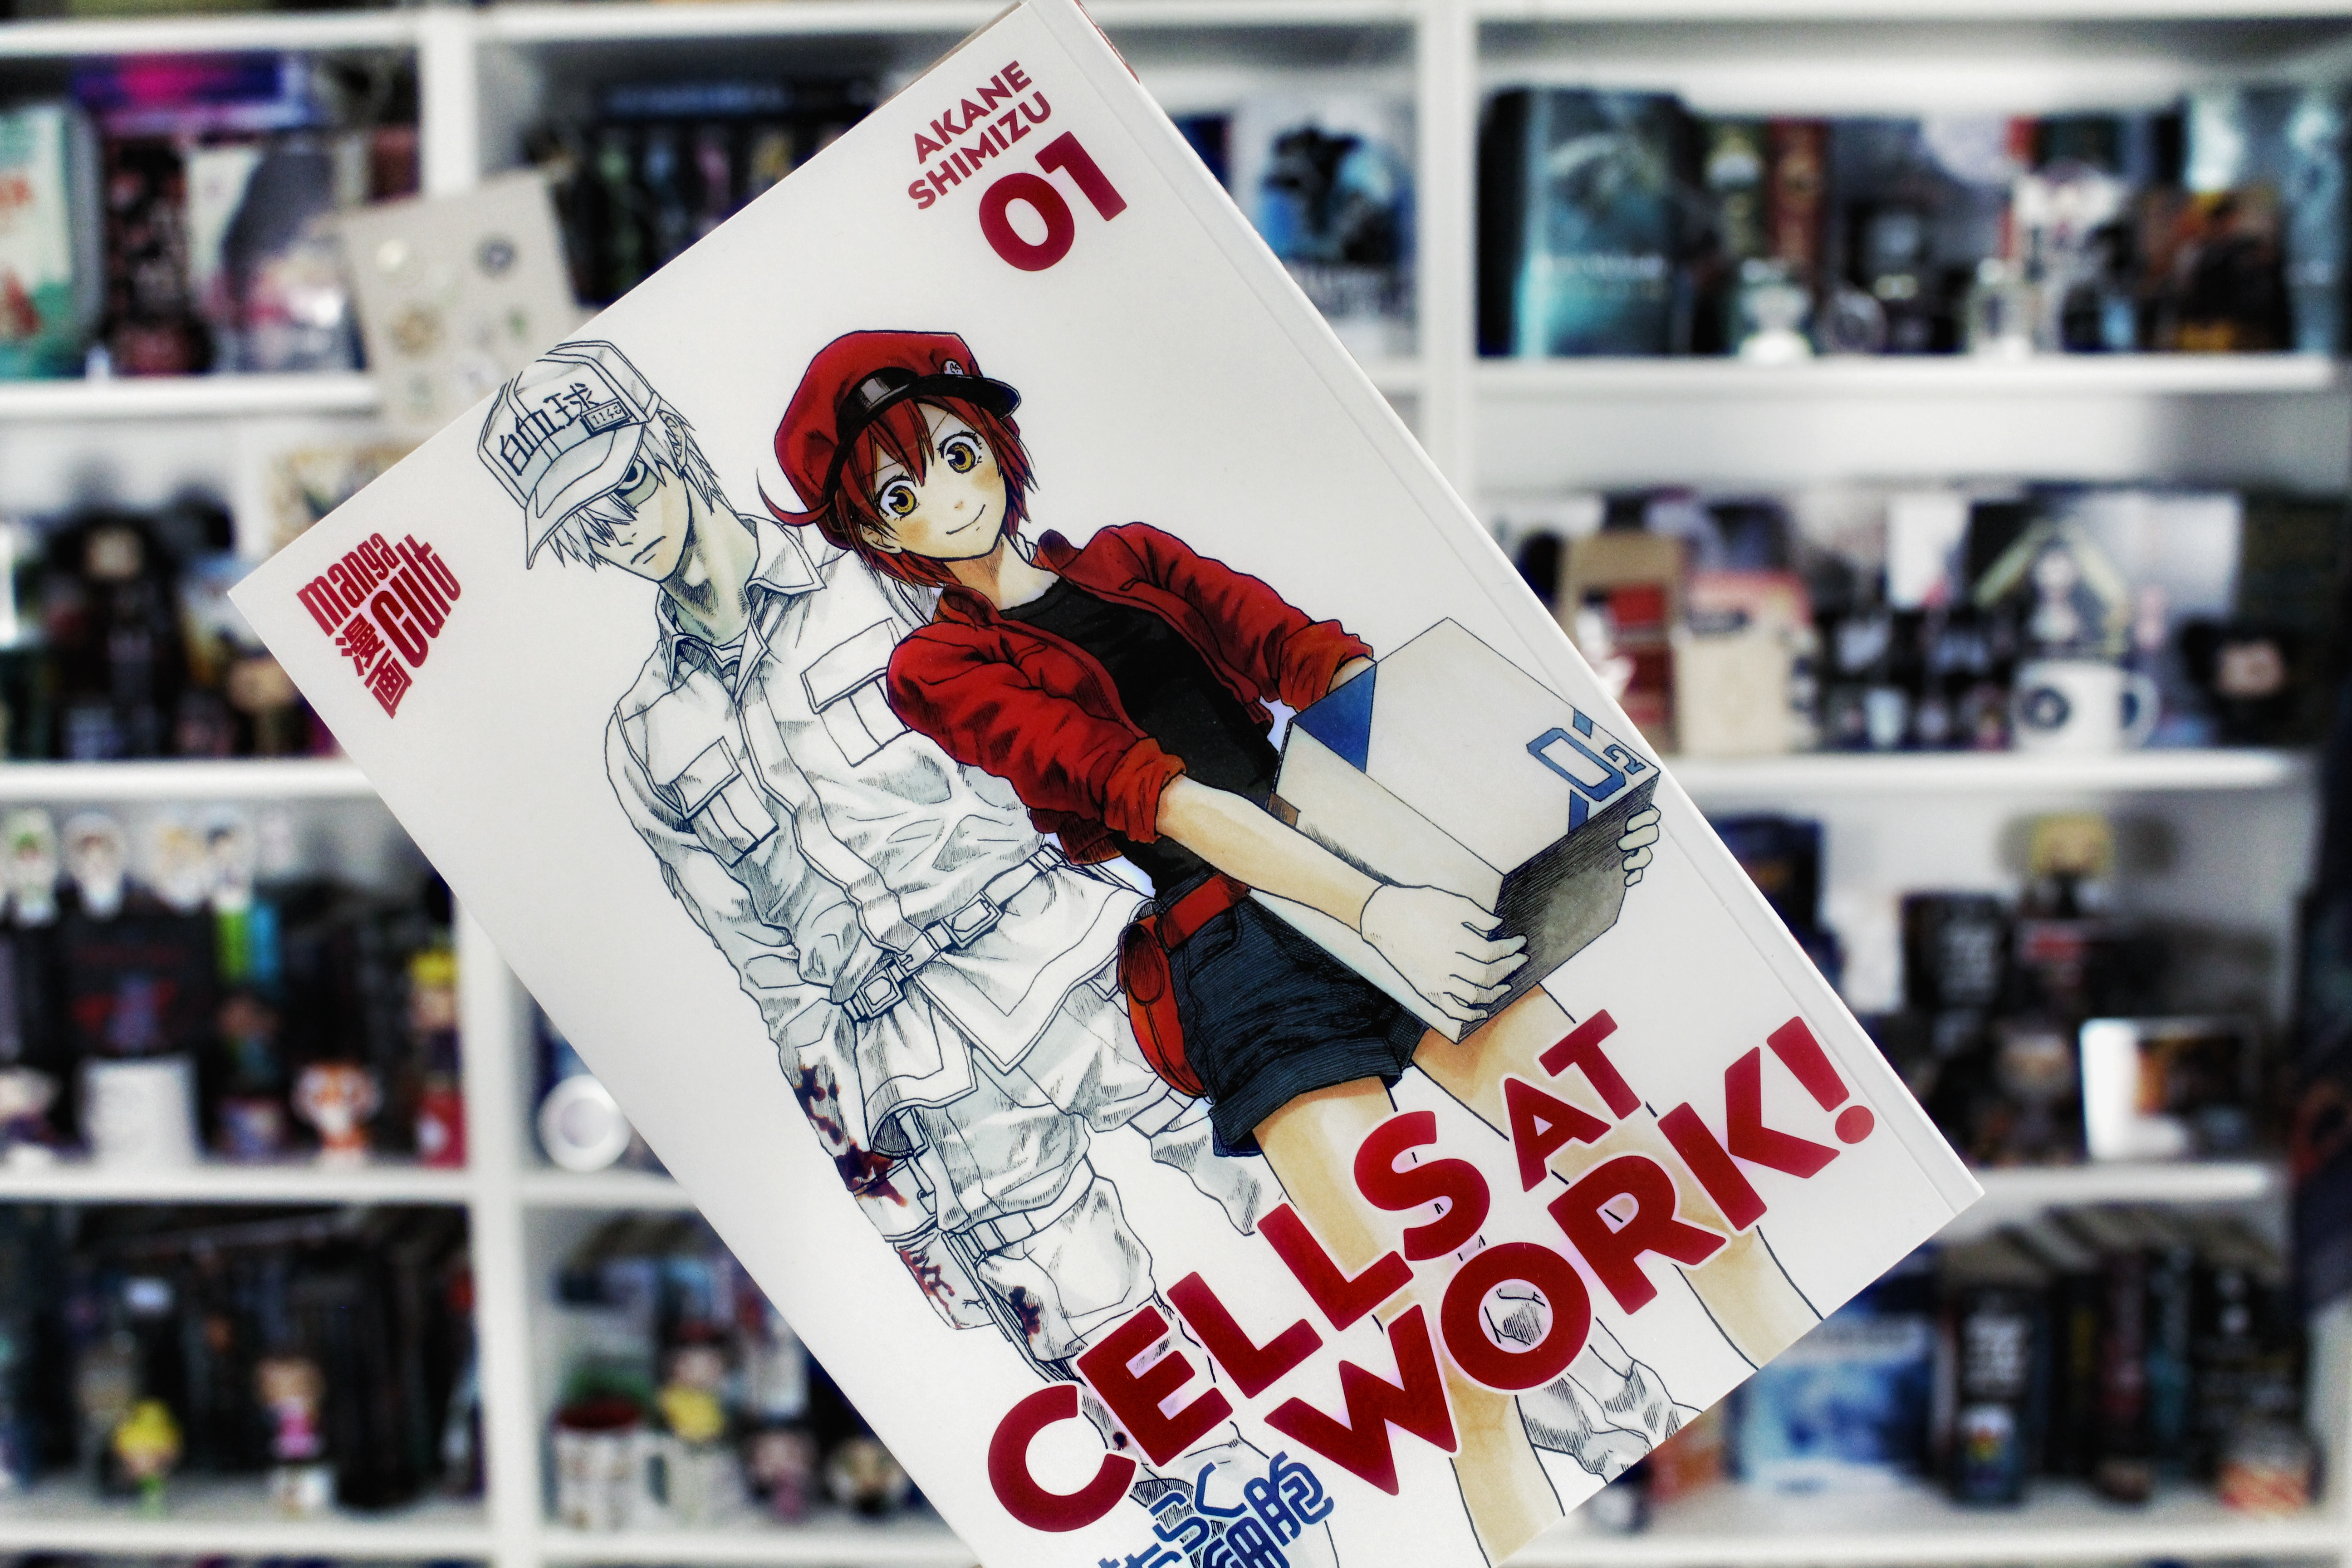 Rezension | Cells at Work 01 von Akane Shimizu